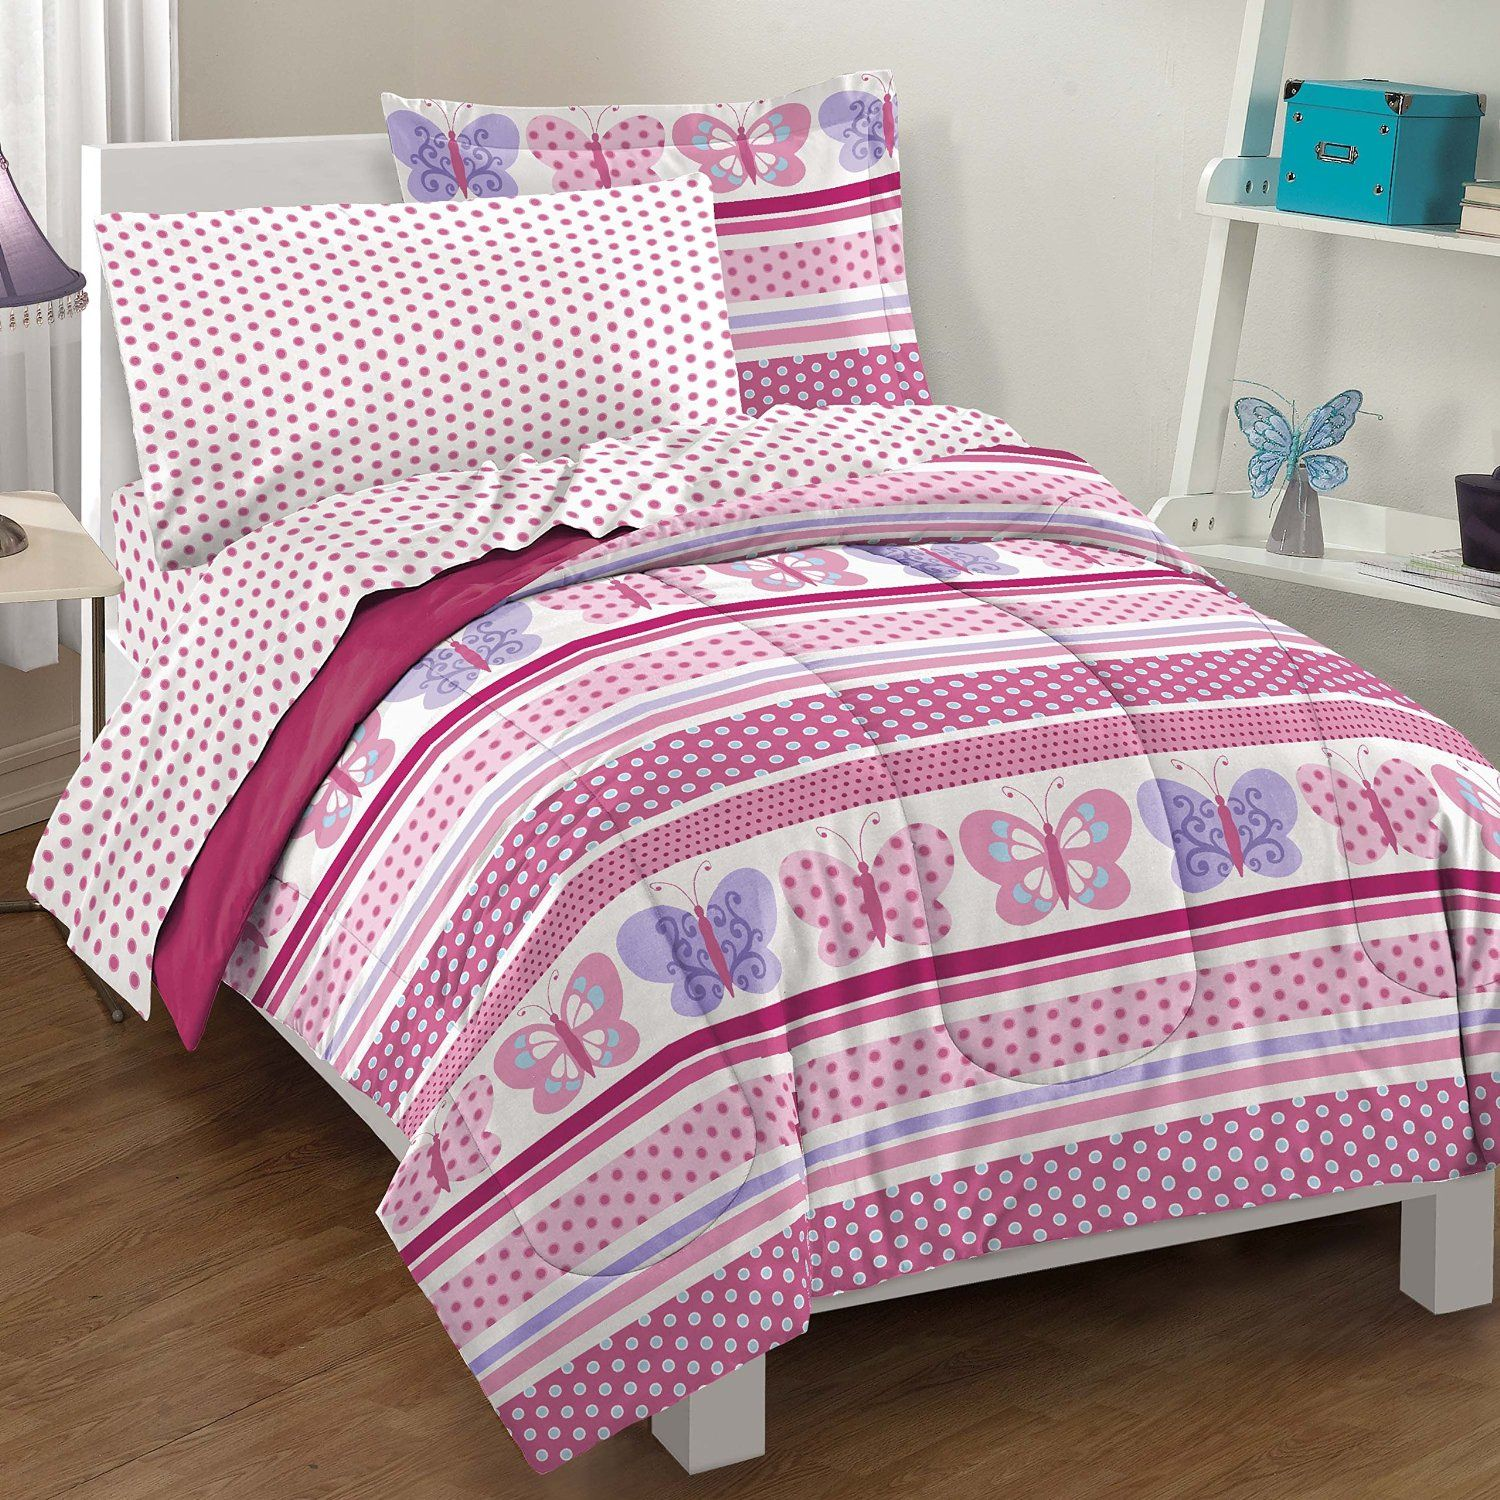 most incredible grey jojo sweet the and designs bedding comforter regard to twin pink set ordinary elizabeth with